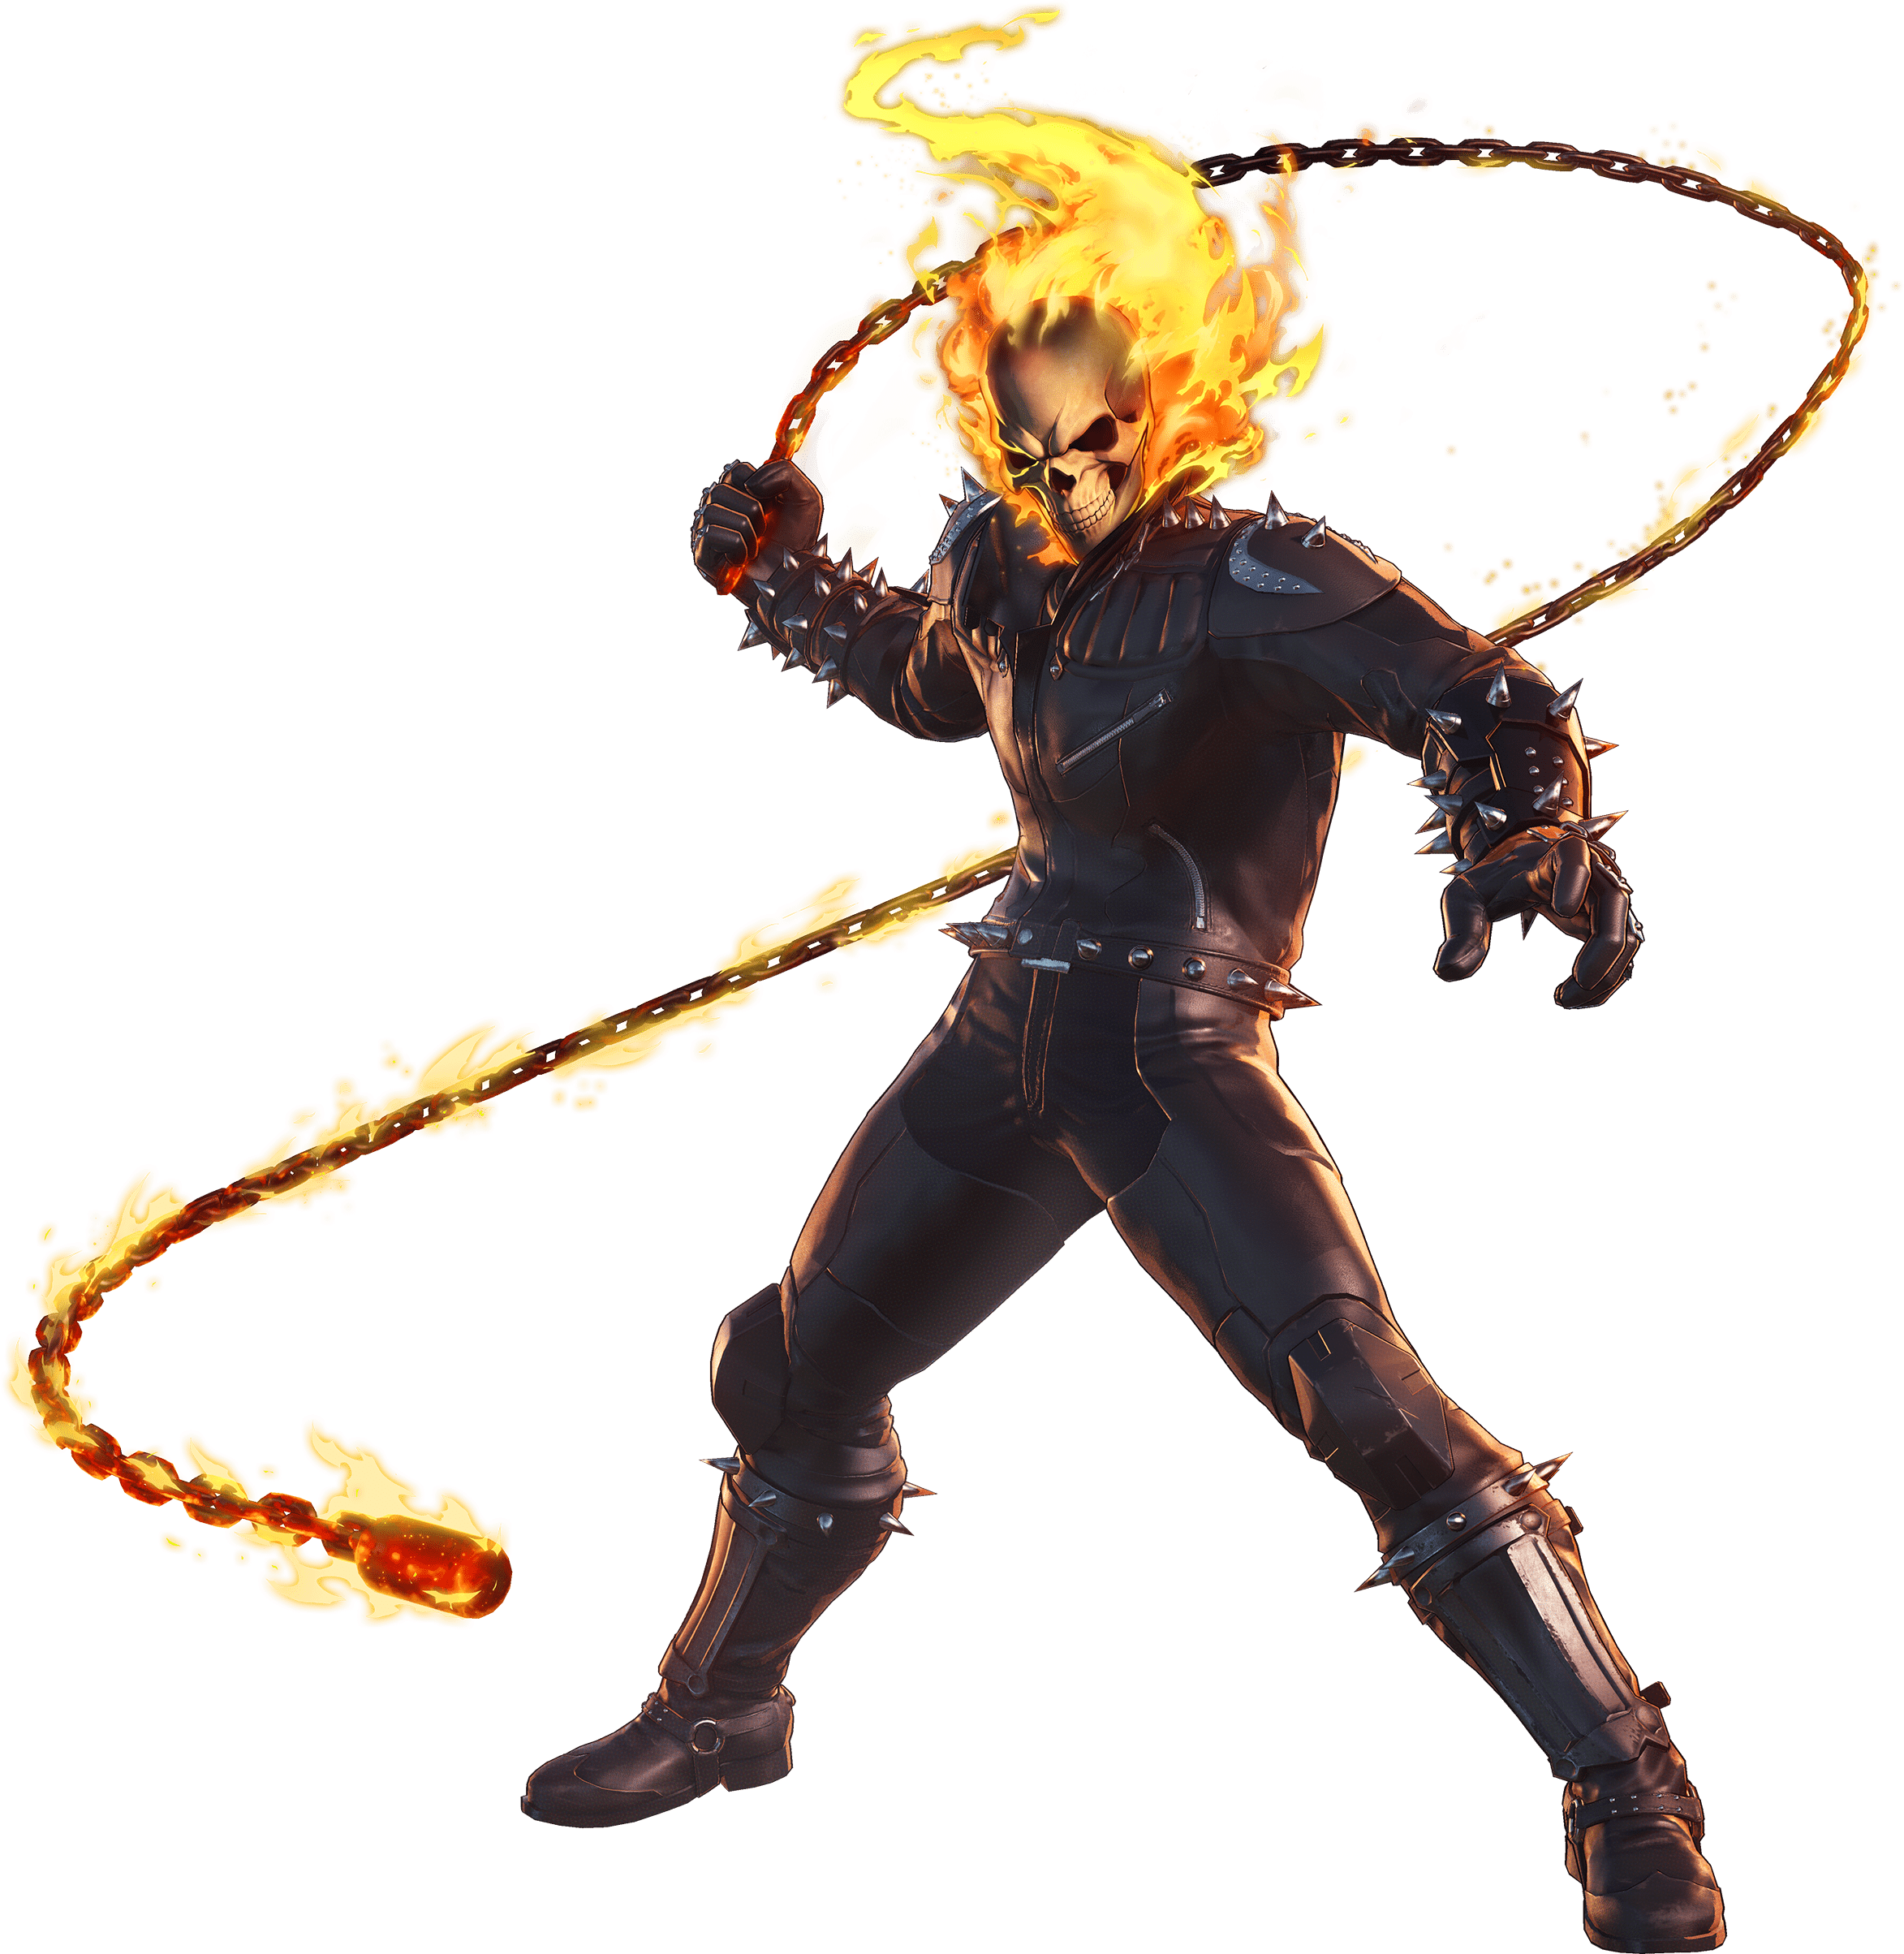 Marvel Ultimate Alliance 3 The Black Order All Characters Introduction Videos And Art Ghost Rider Marvel Marvel Avengers Alliance Marvel Ultimate Alliance